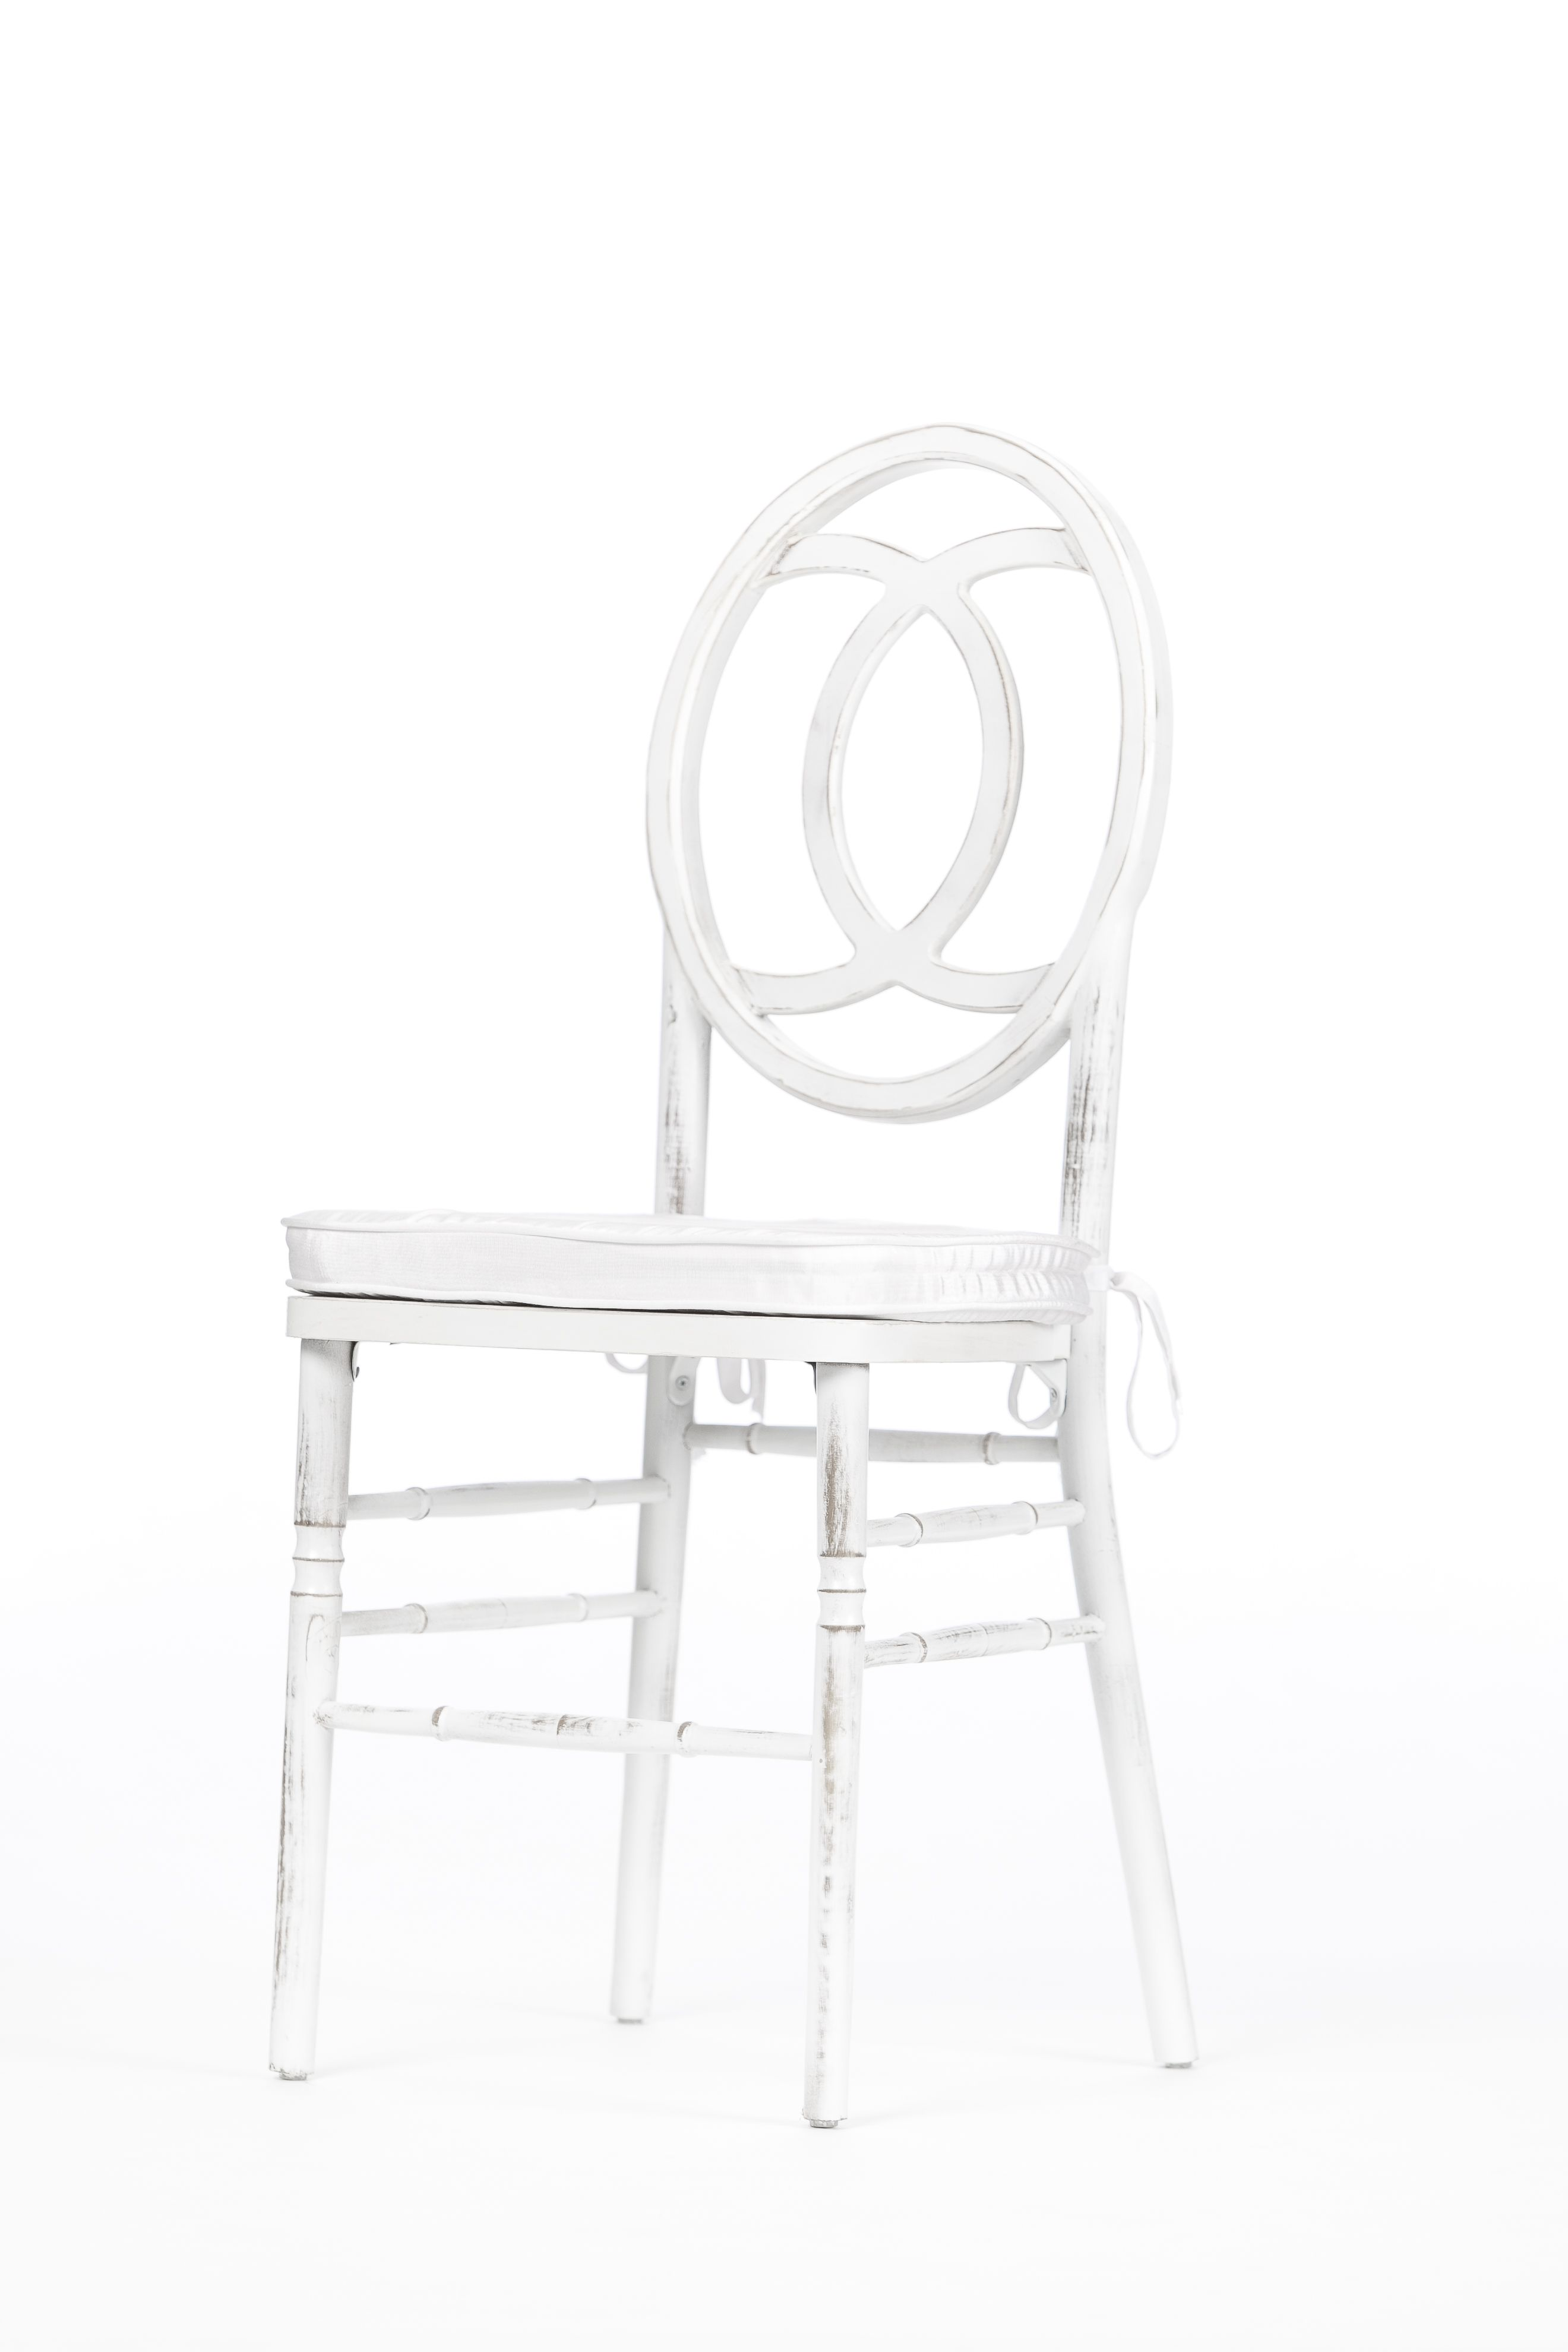 designer decor chairs childrens table rentals charming chair sets and